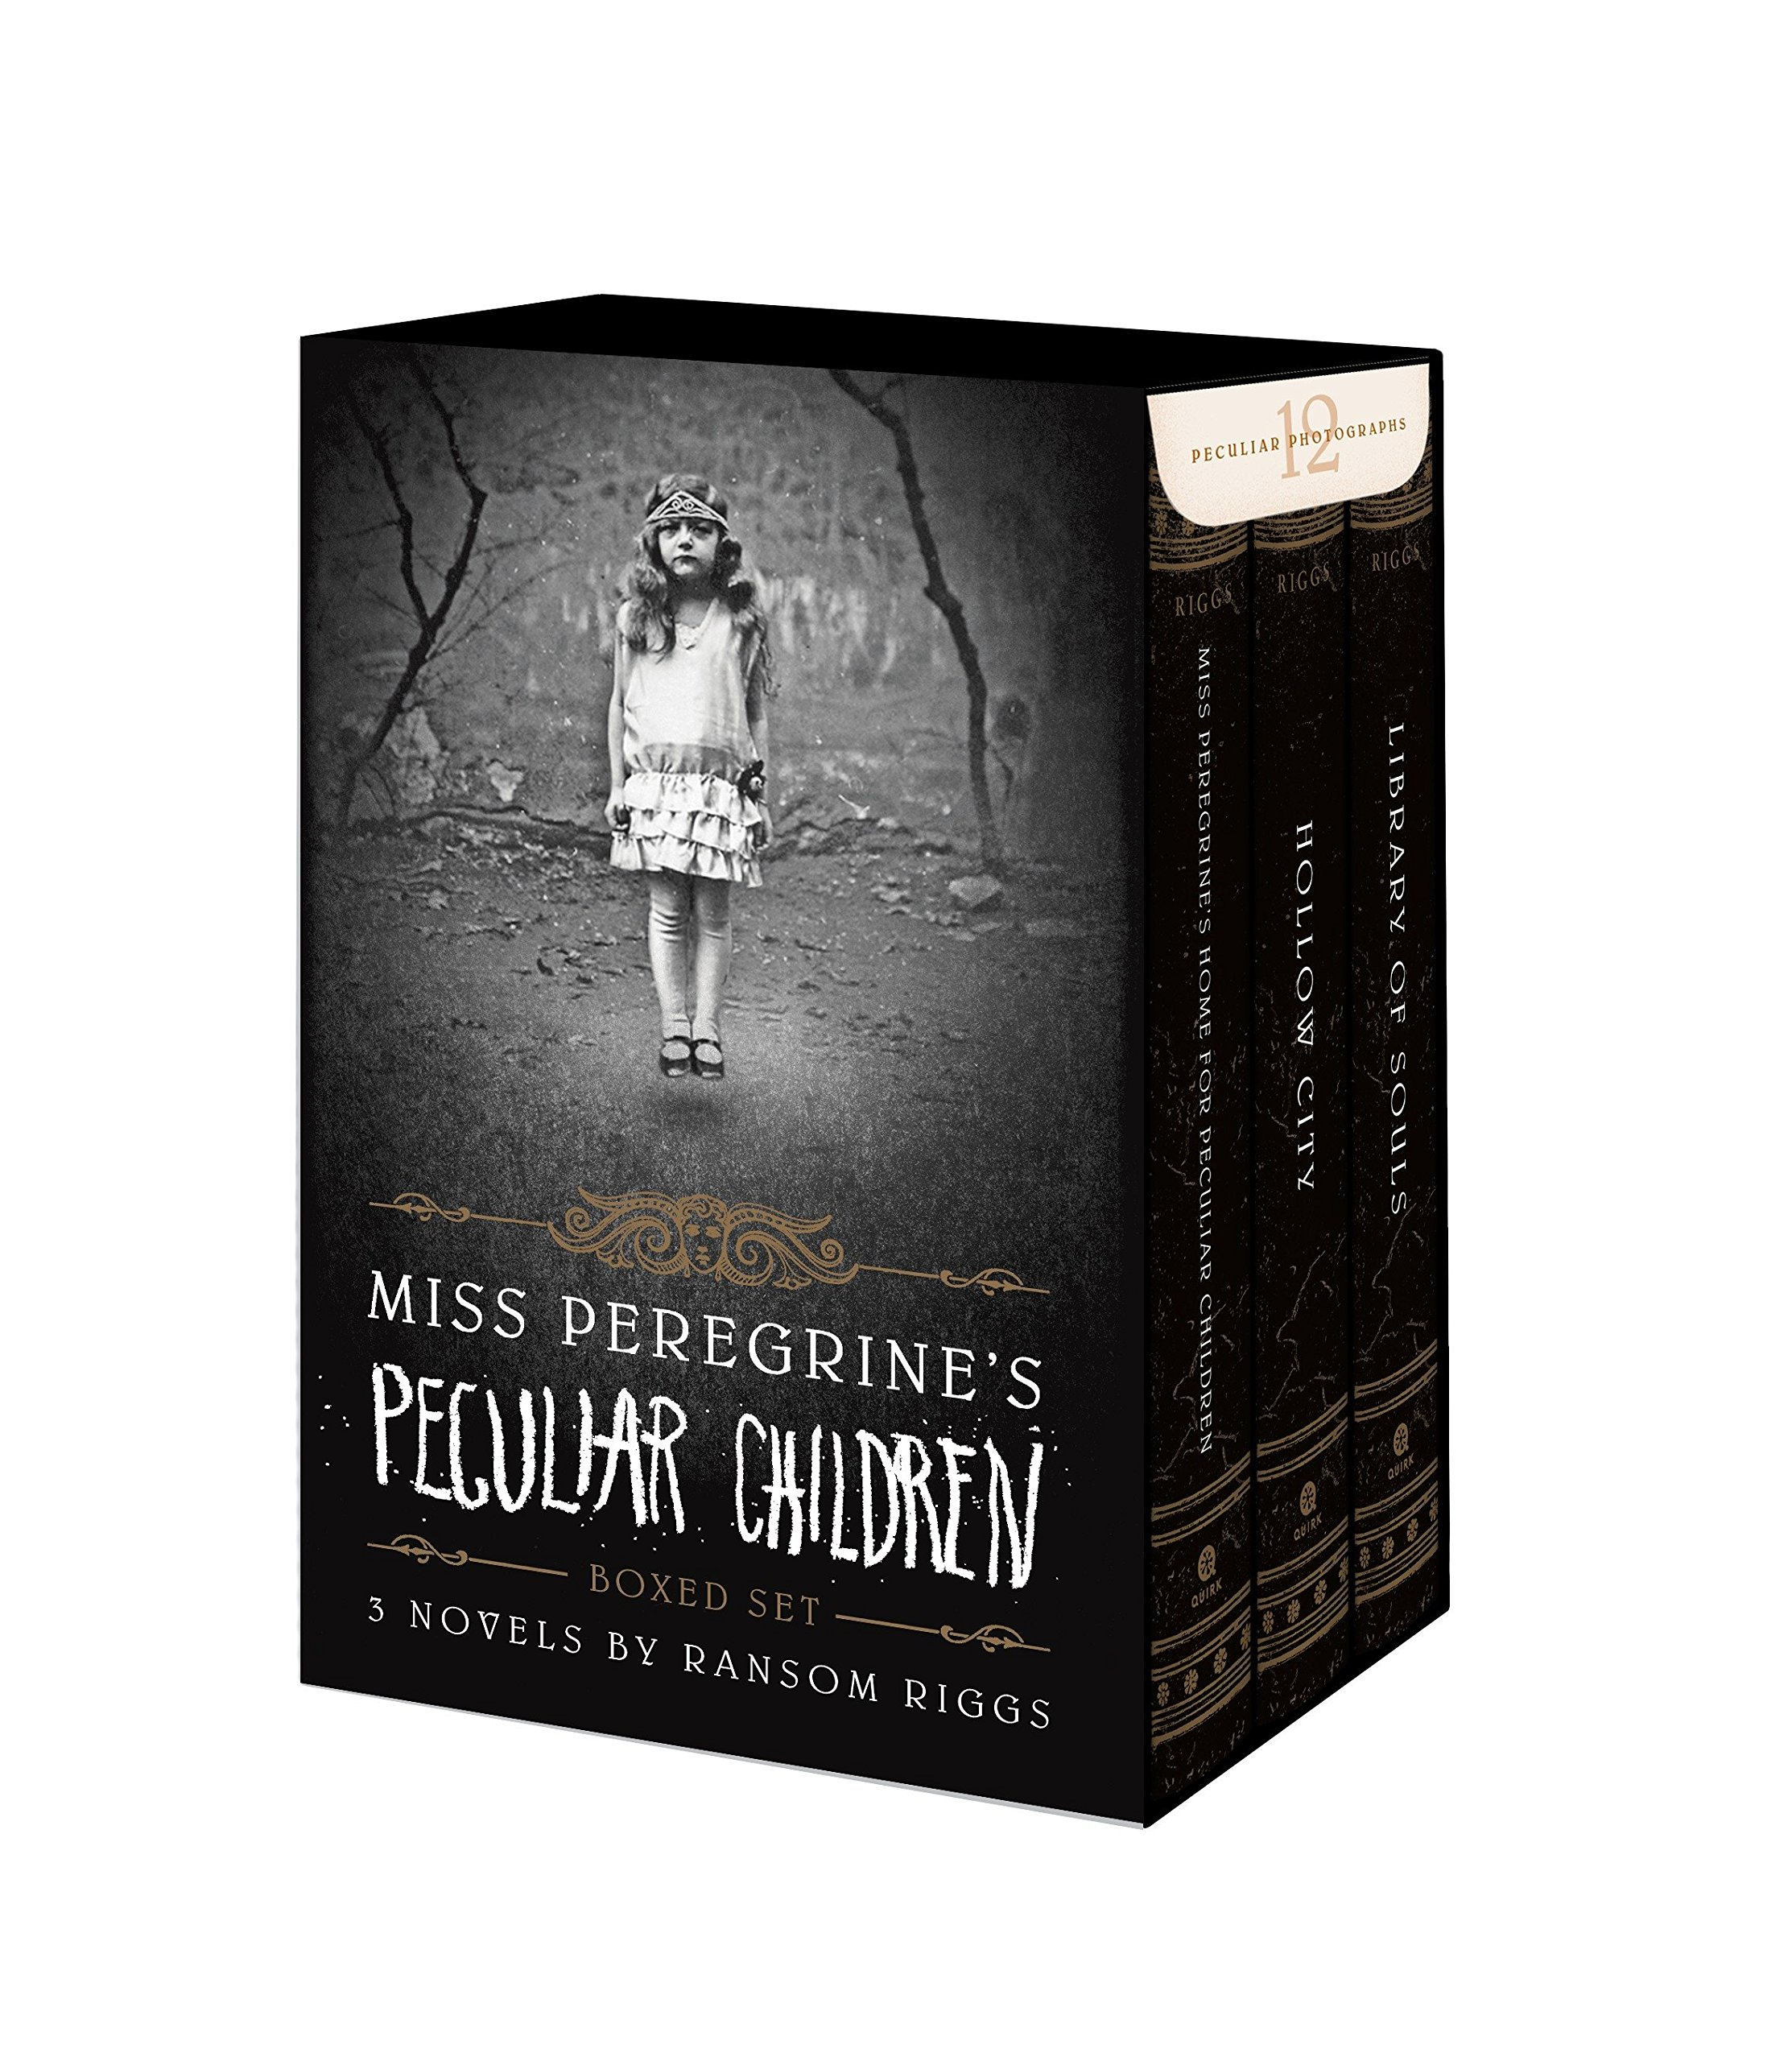 Miss Peregrine Trilogy Boxed Set (Box Set): Amazon.es: Ransom Riggs: Libros en idiomas extranjeros